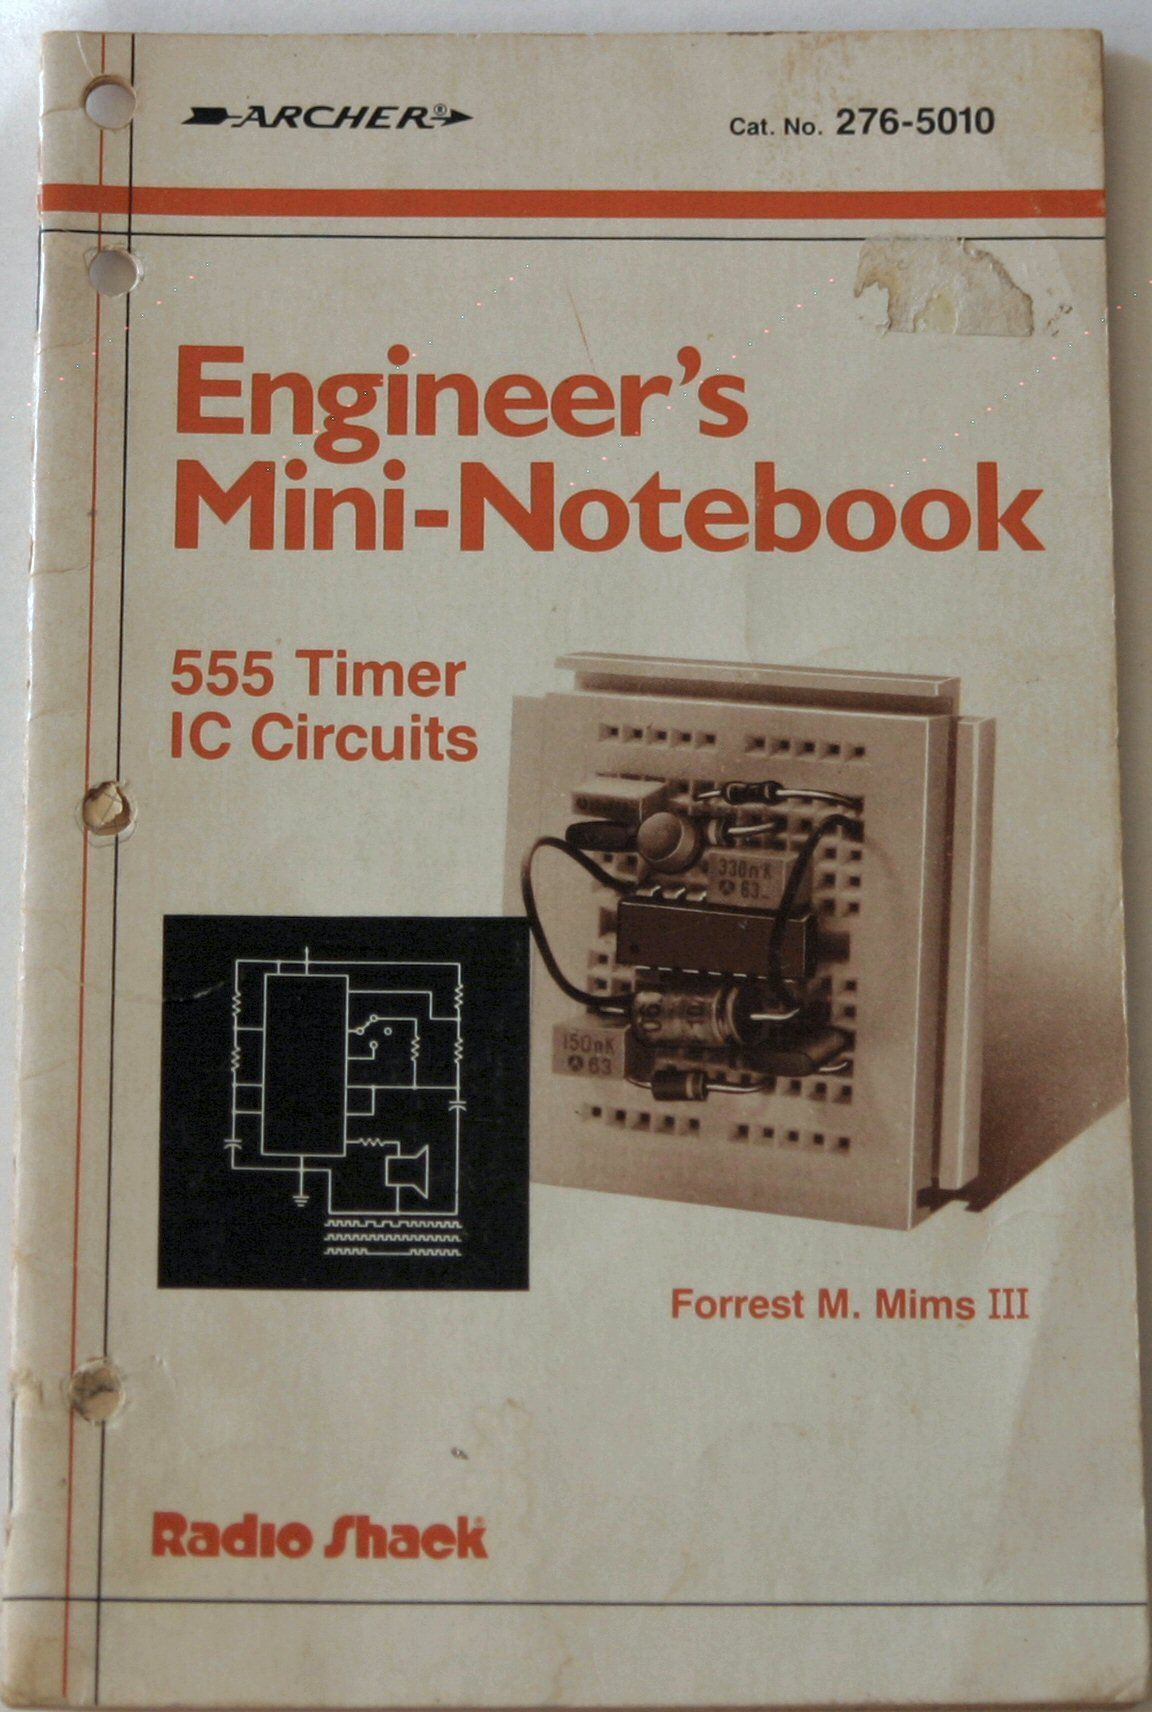 Engineers Mini Notebook 555 Timer Ic Circuits Catno 276 5010 Circuit Forrest M Iii Mims Books